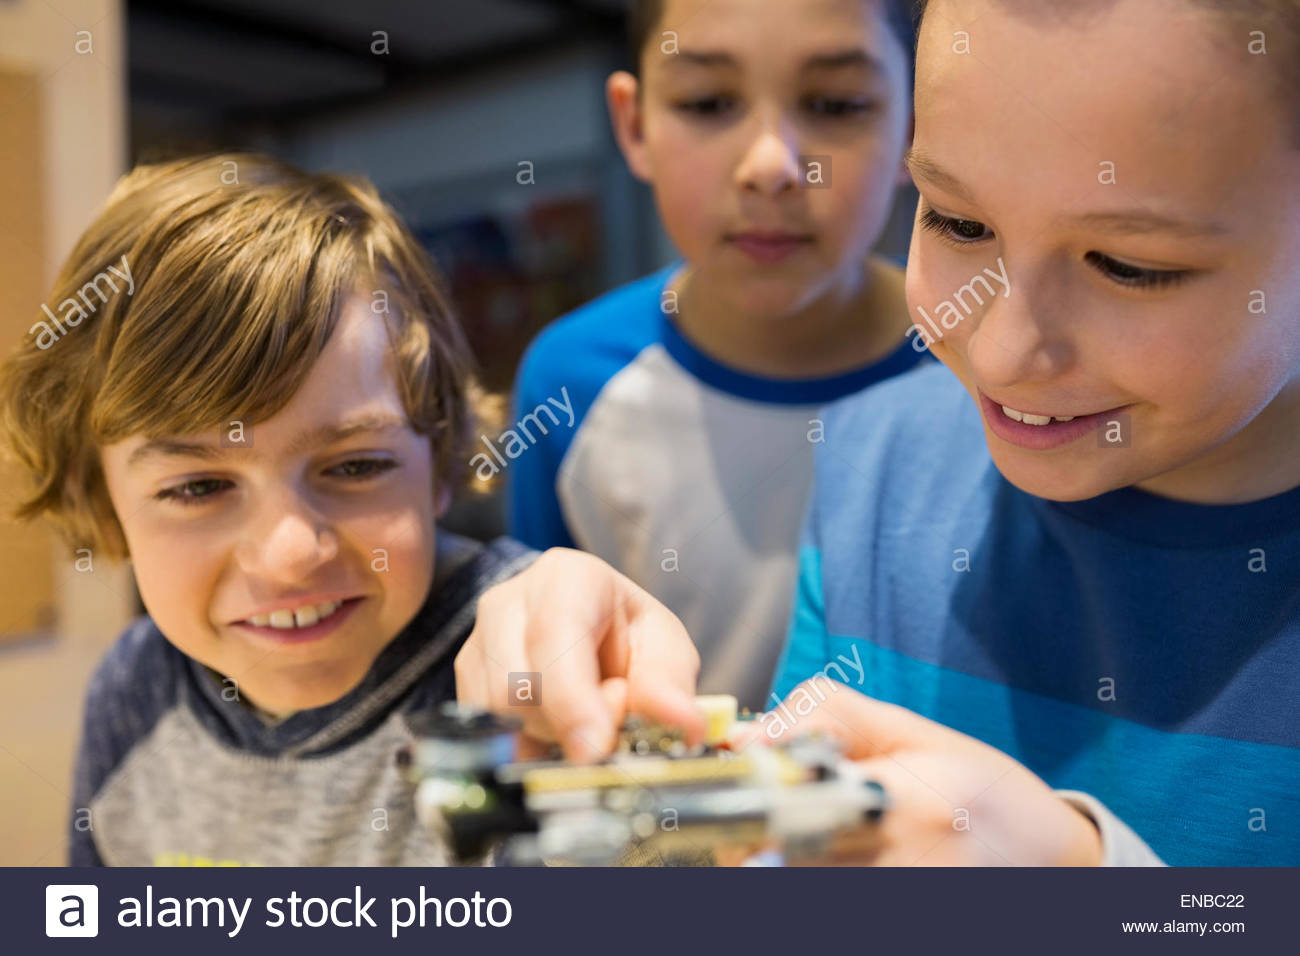 Close up boys assembling electronic circuit science center - Stock Image